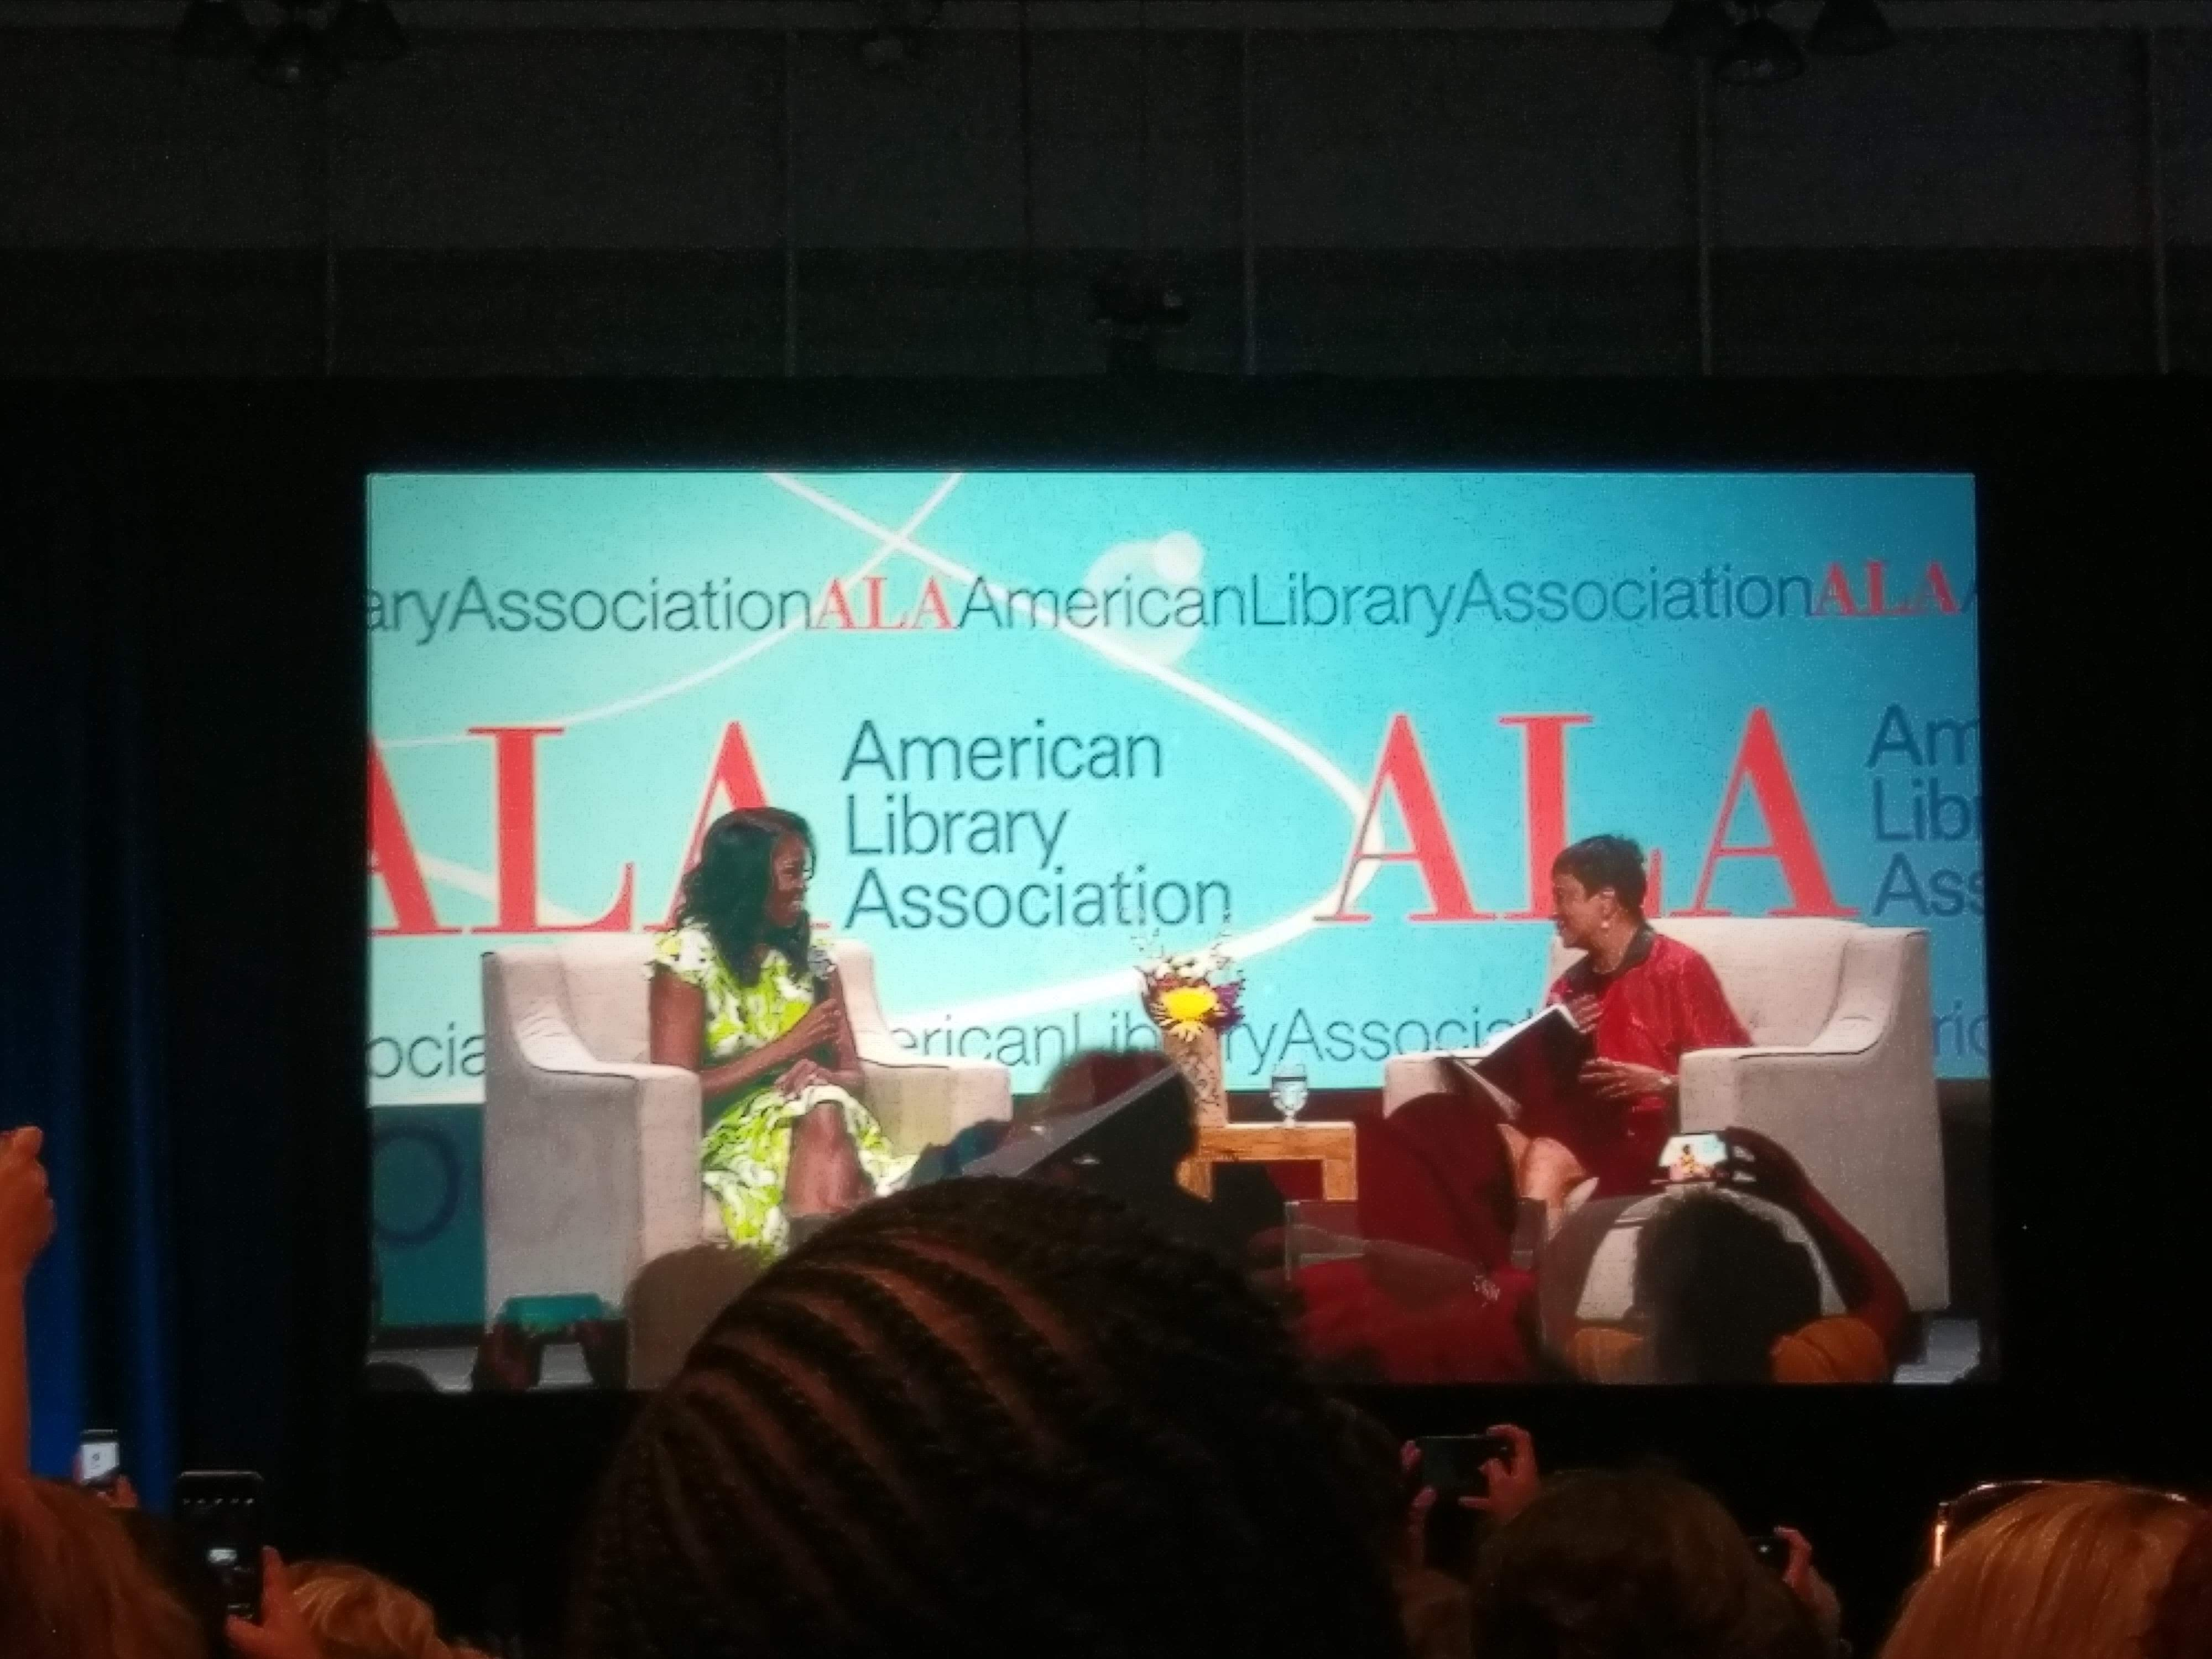 American Library Association American Library Association Ala Conference In New Orleans All